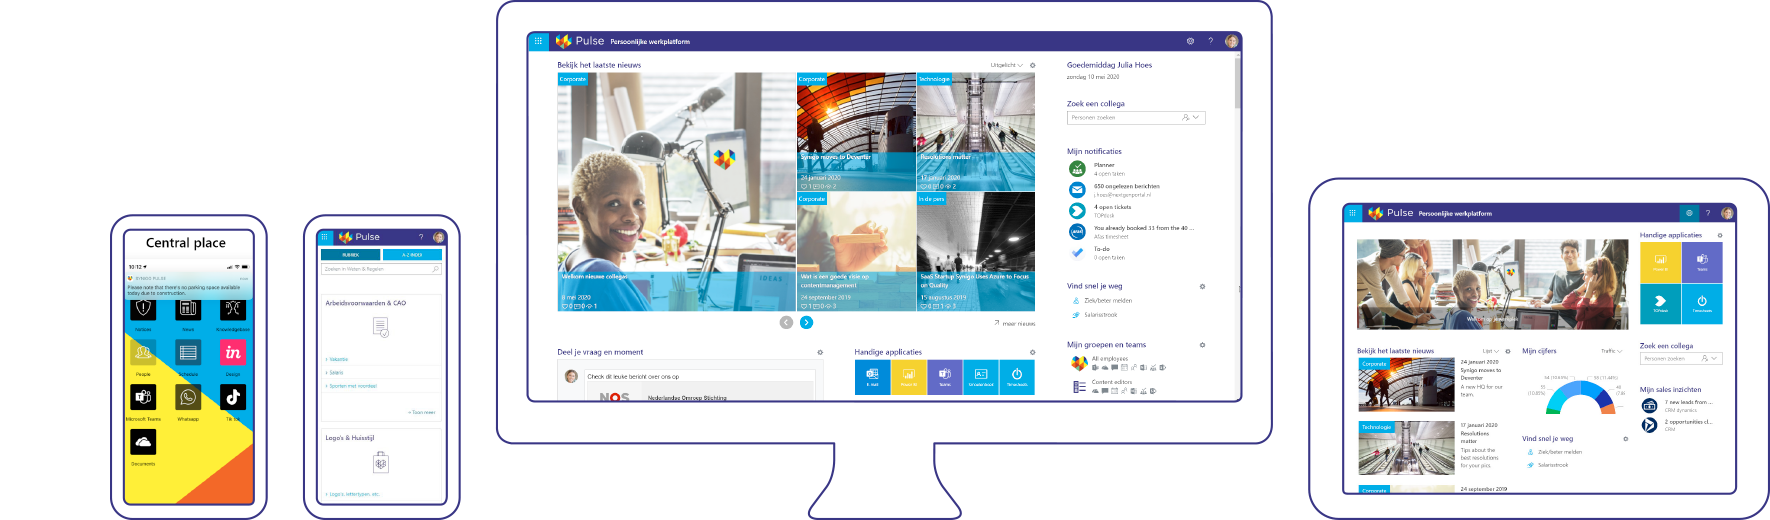 Screenshots synigo pulse, social intranet and digital workplace